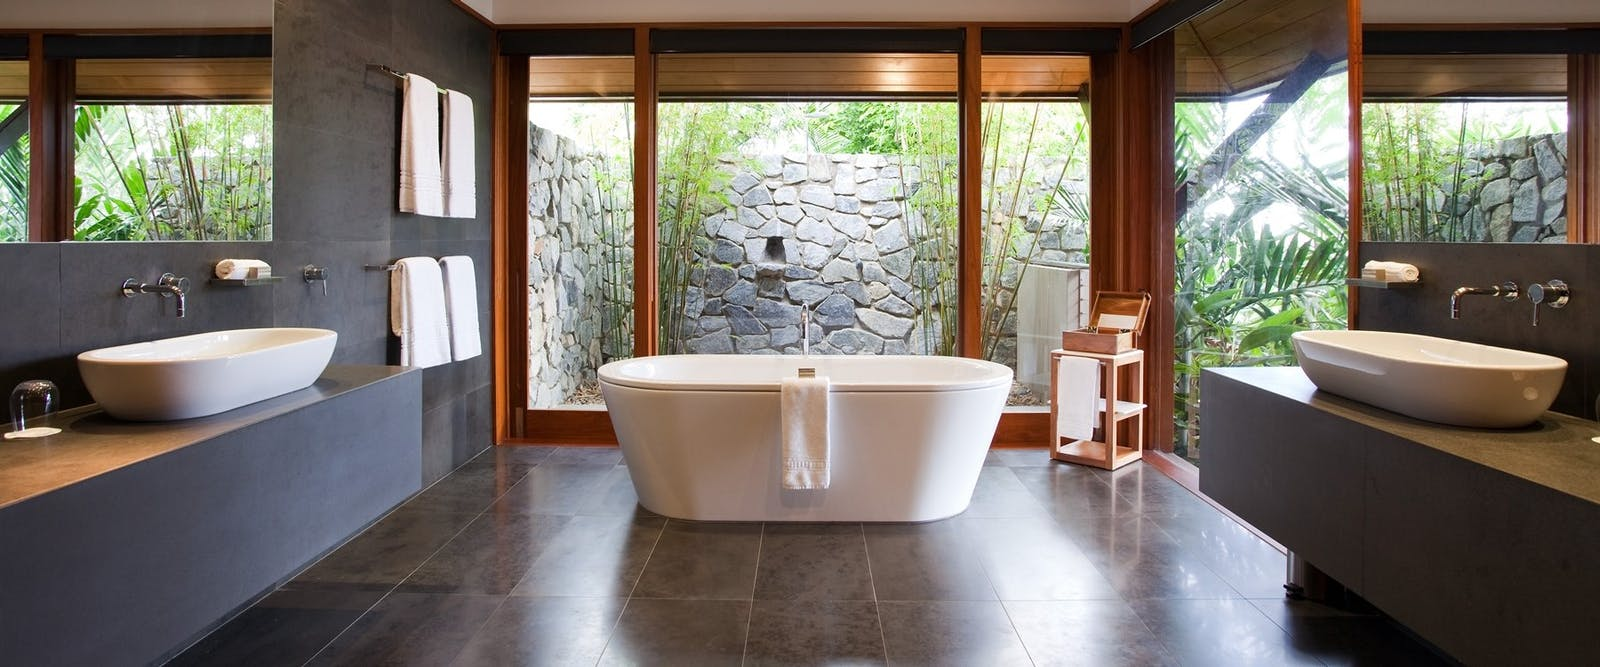 Windward bath, qualia, hamilton island